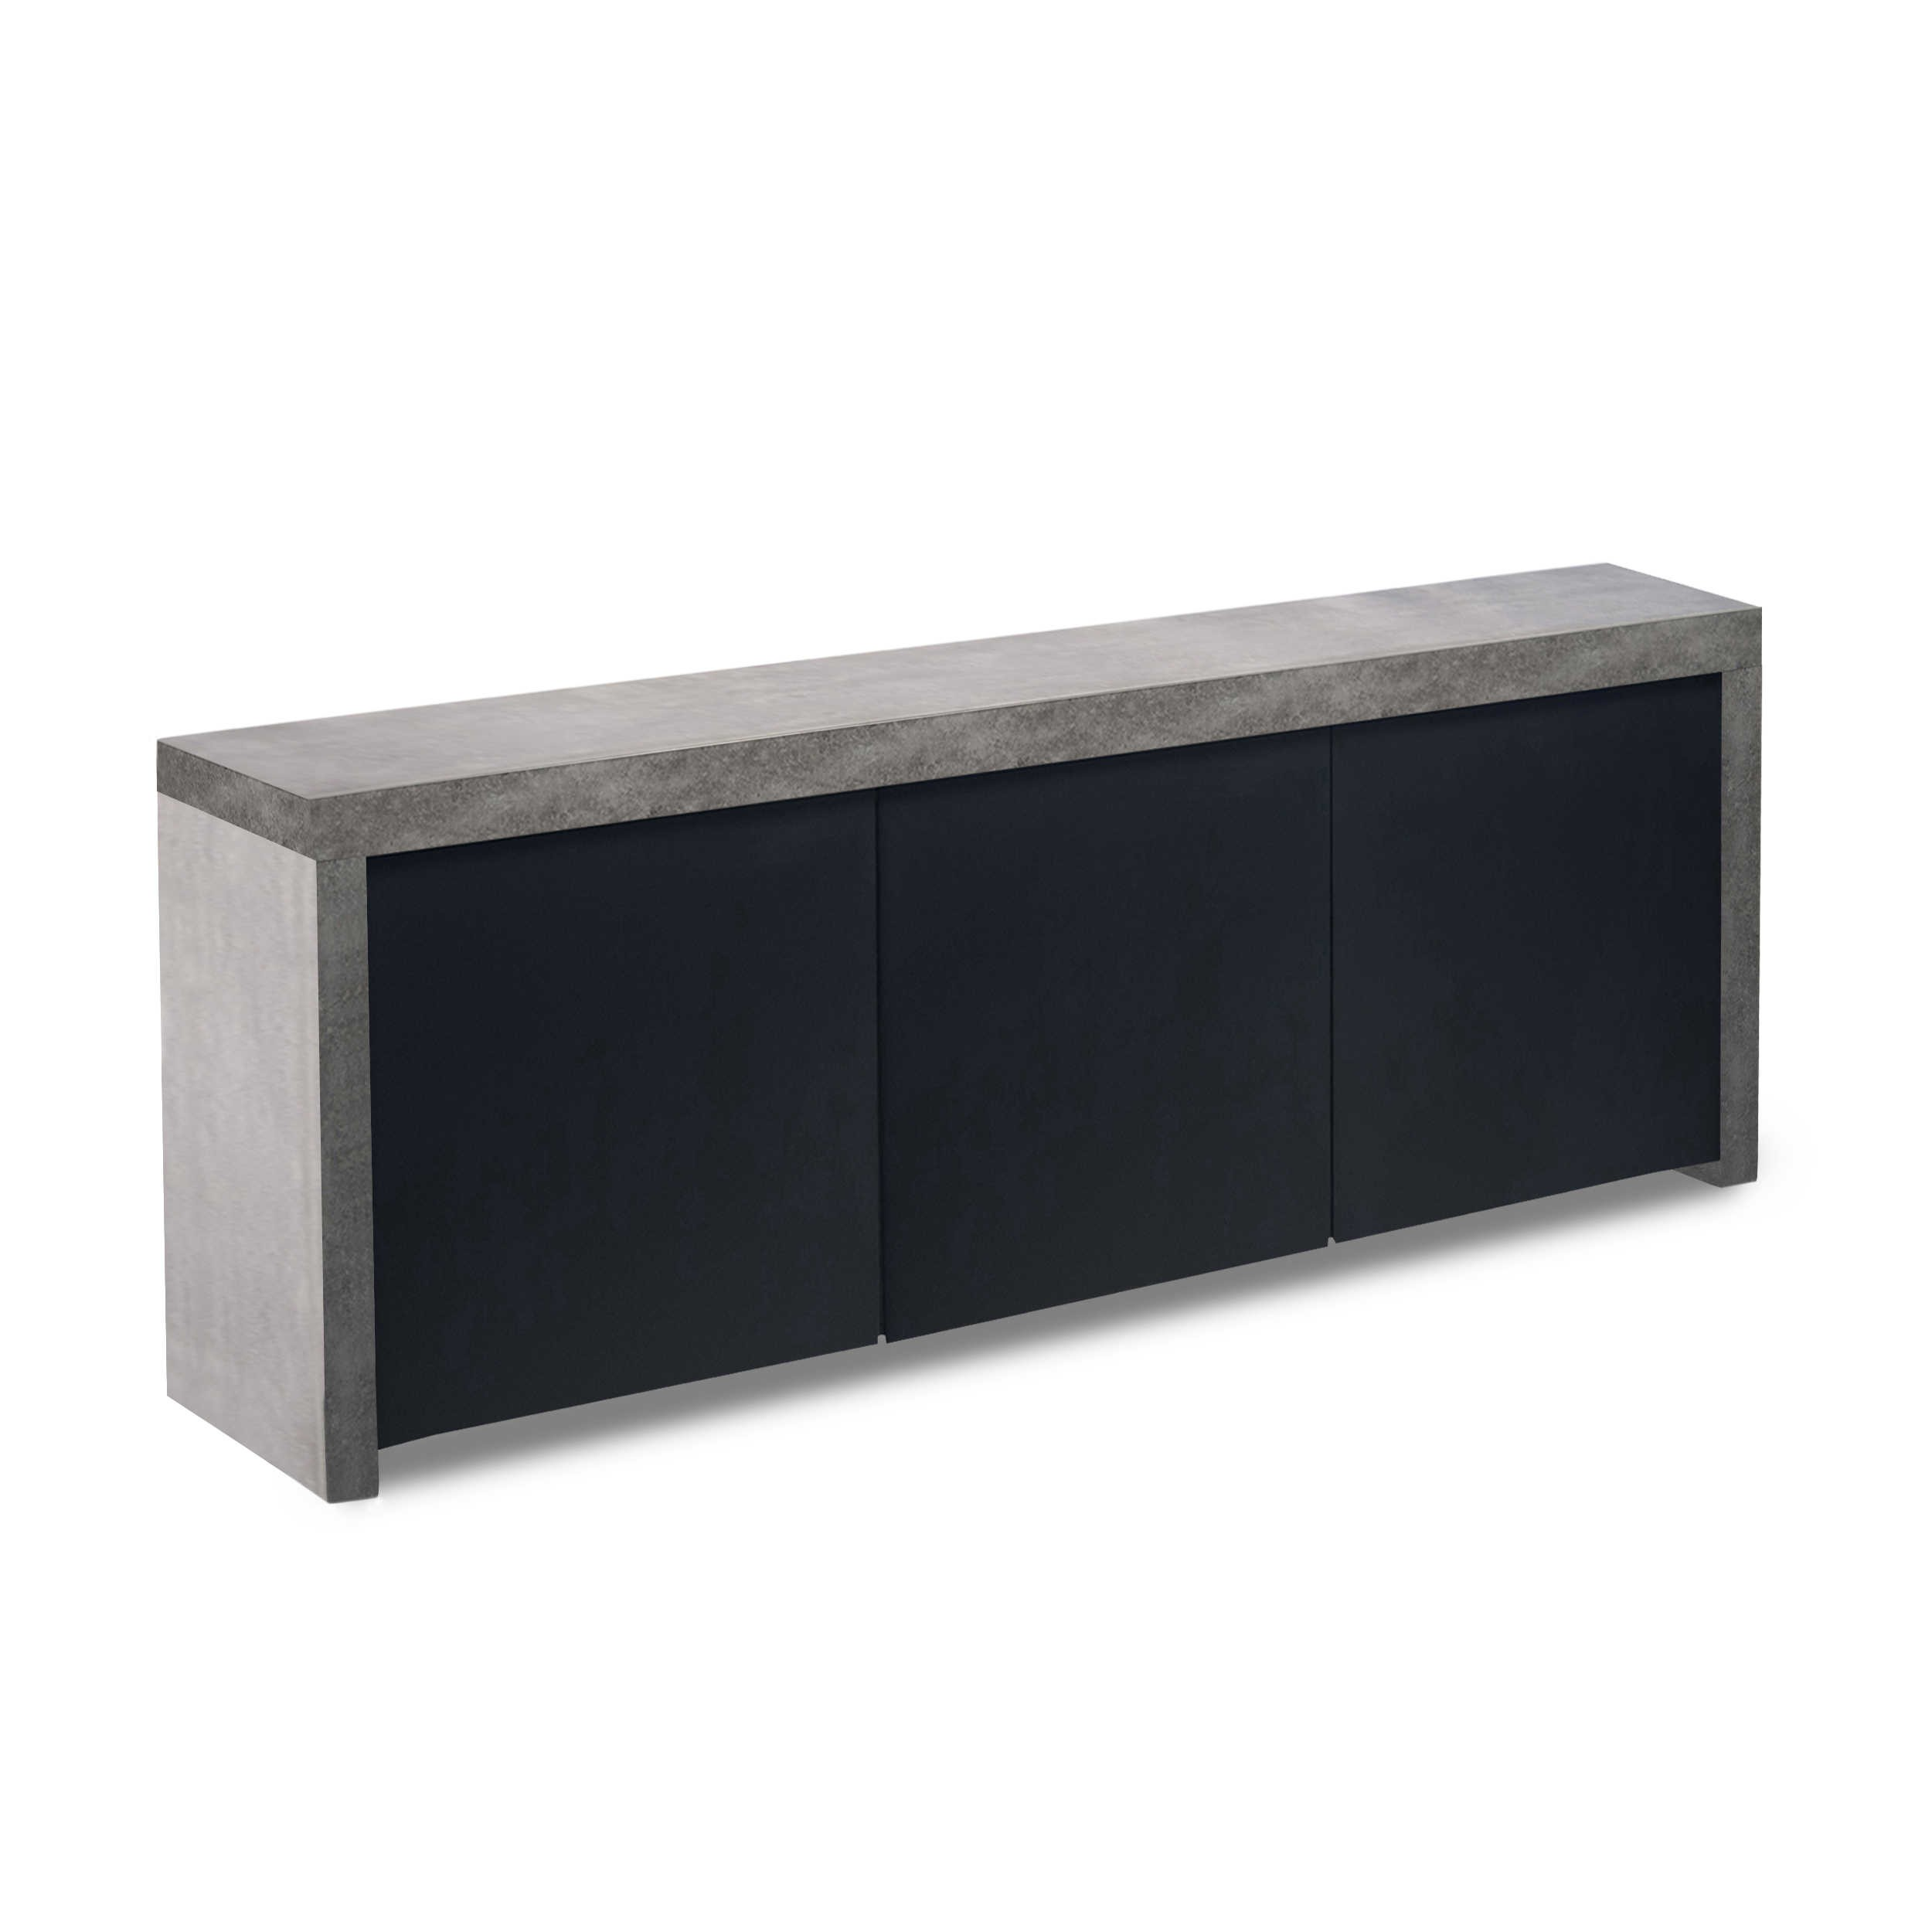 temahome sideboard pombal grau lack hochglanz online kaufen bei woonio. Black Bedroom Furniture Sets. Home Design Ideas